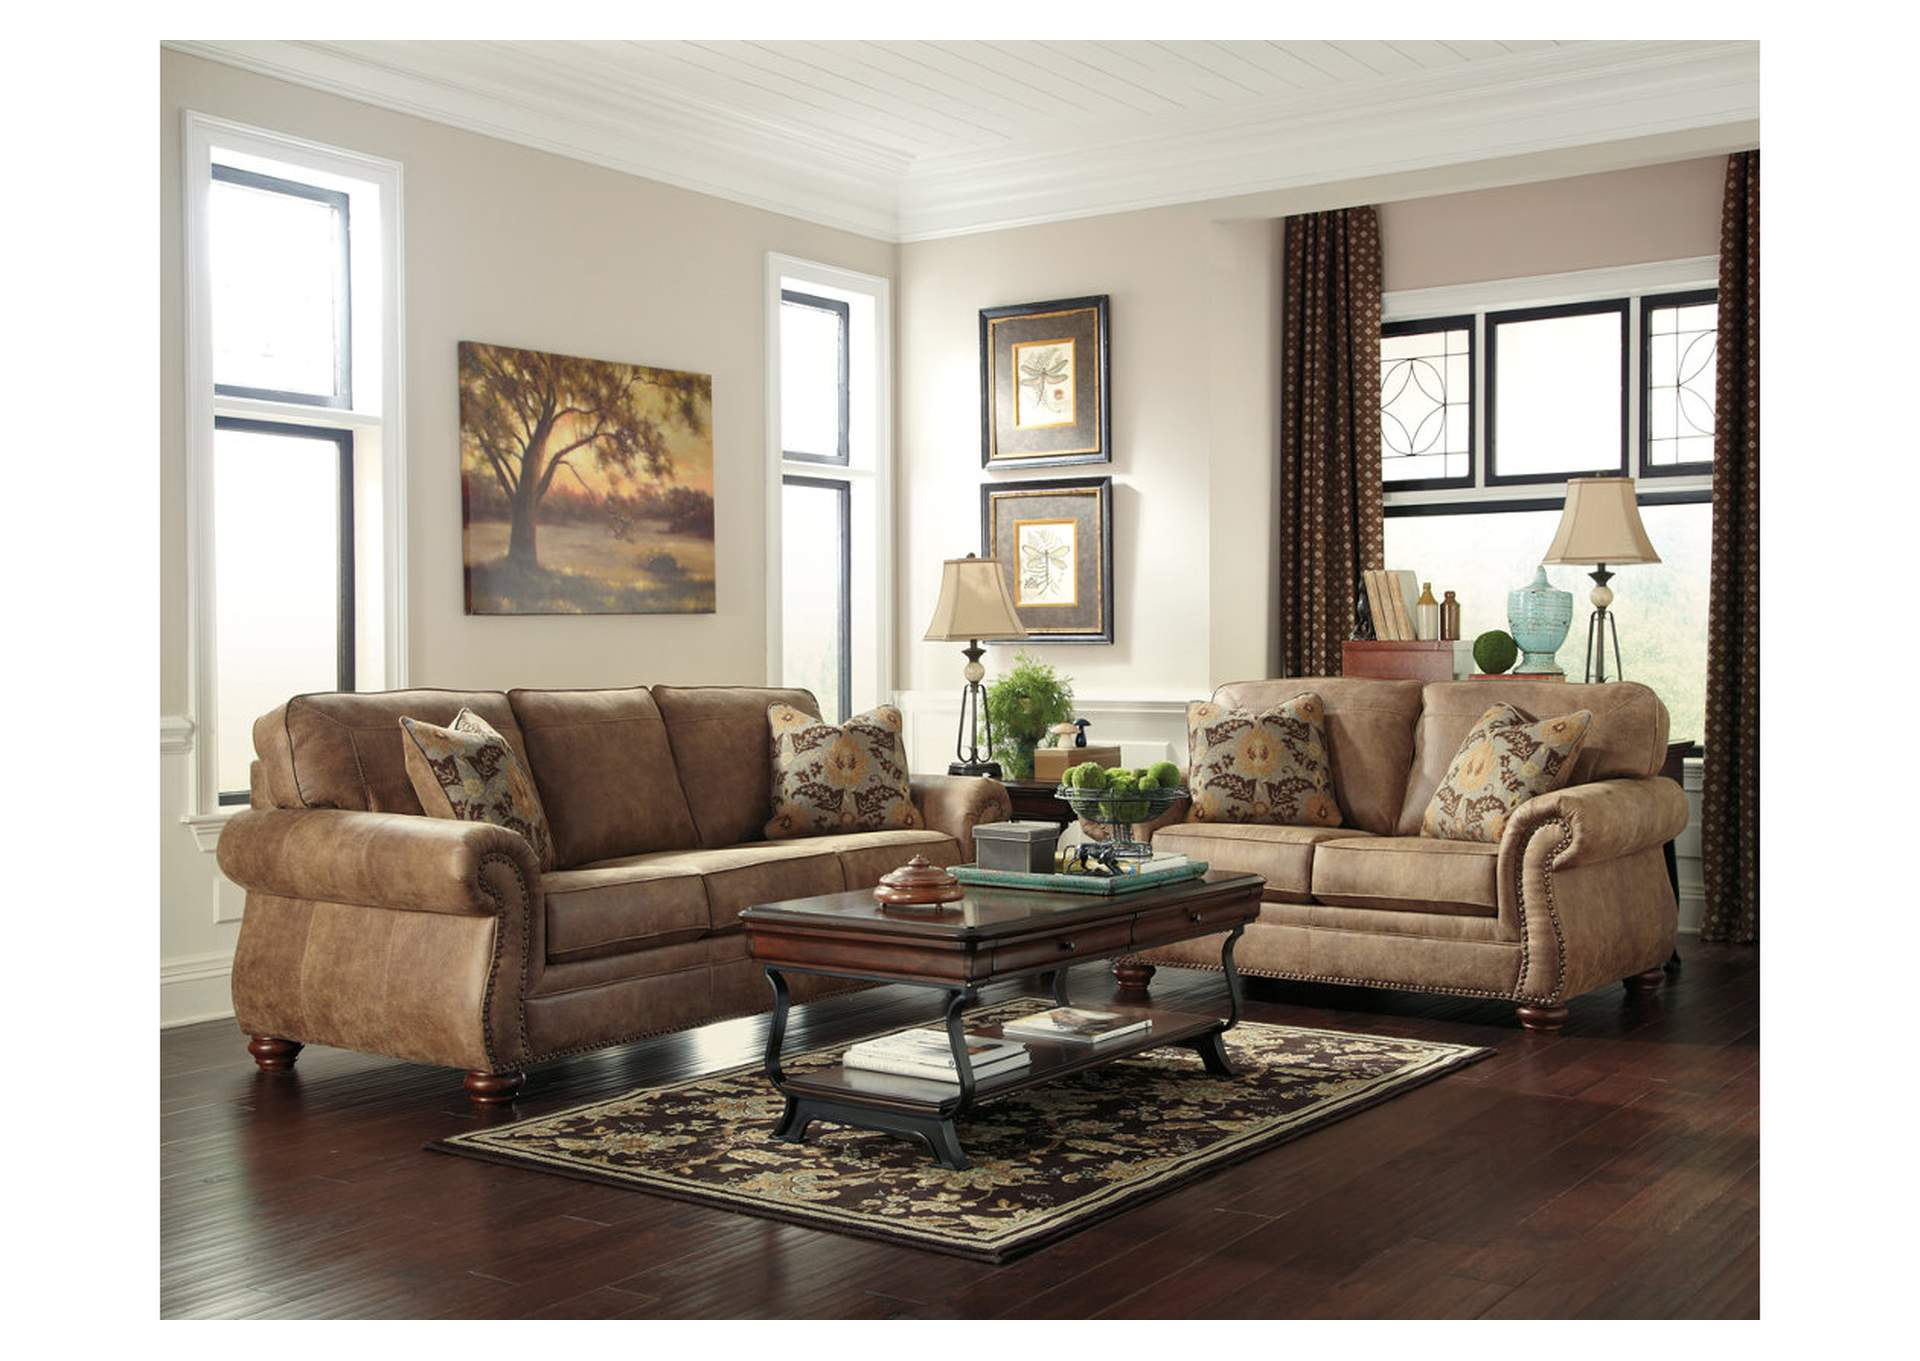 red microfiber reclining sofa american made sleepers austin's couch potatoes | furniture stores austin, texas ...